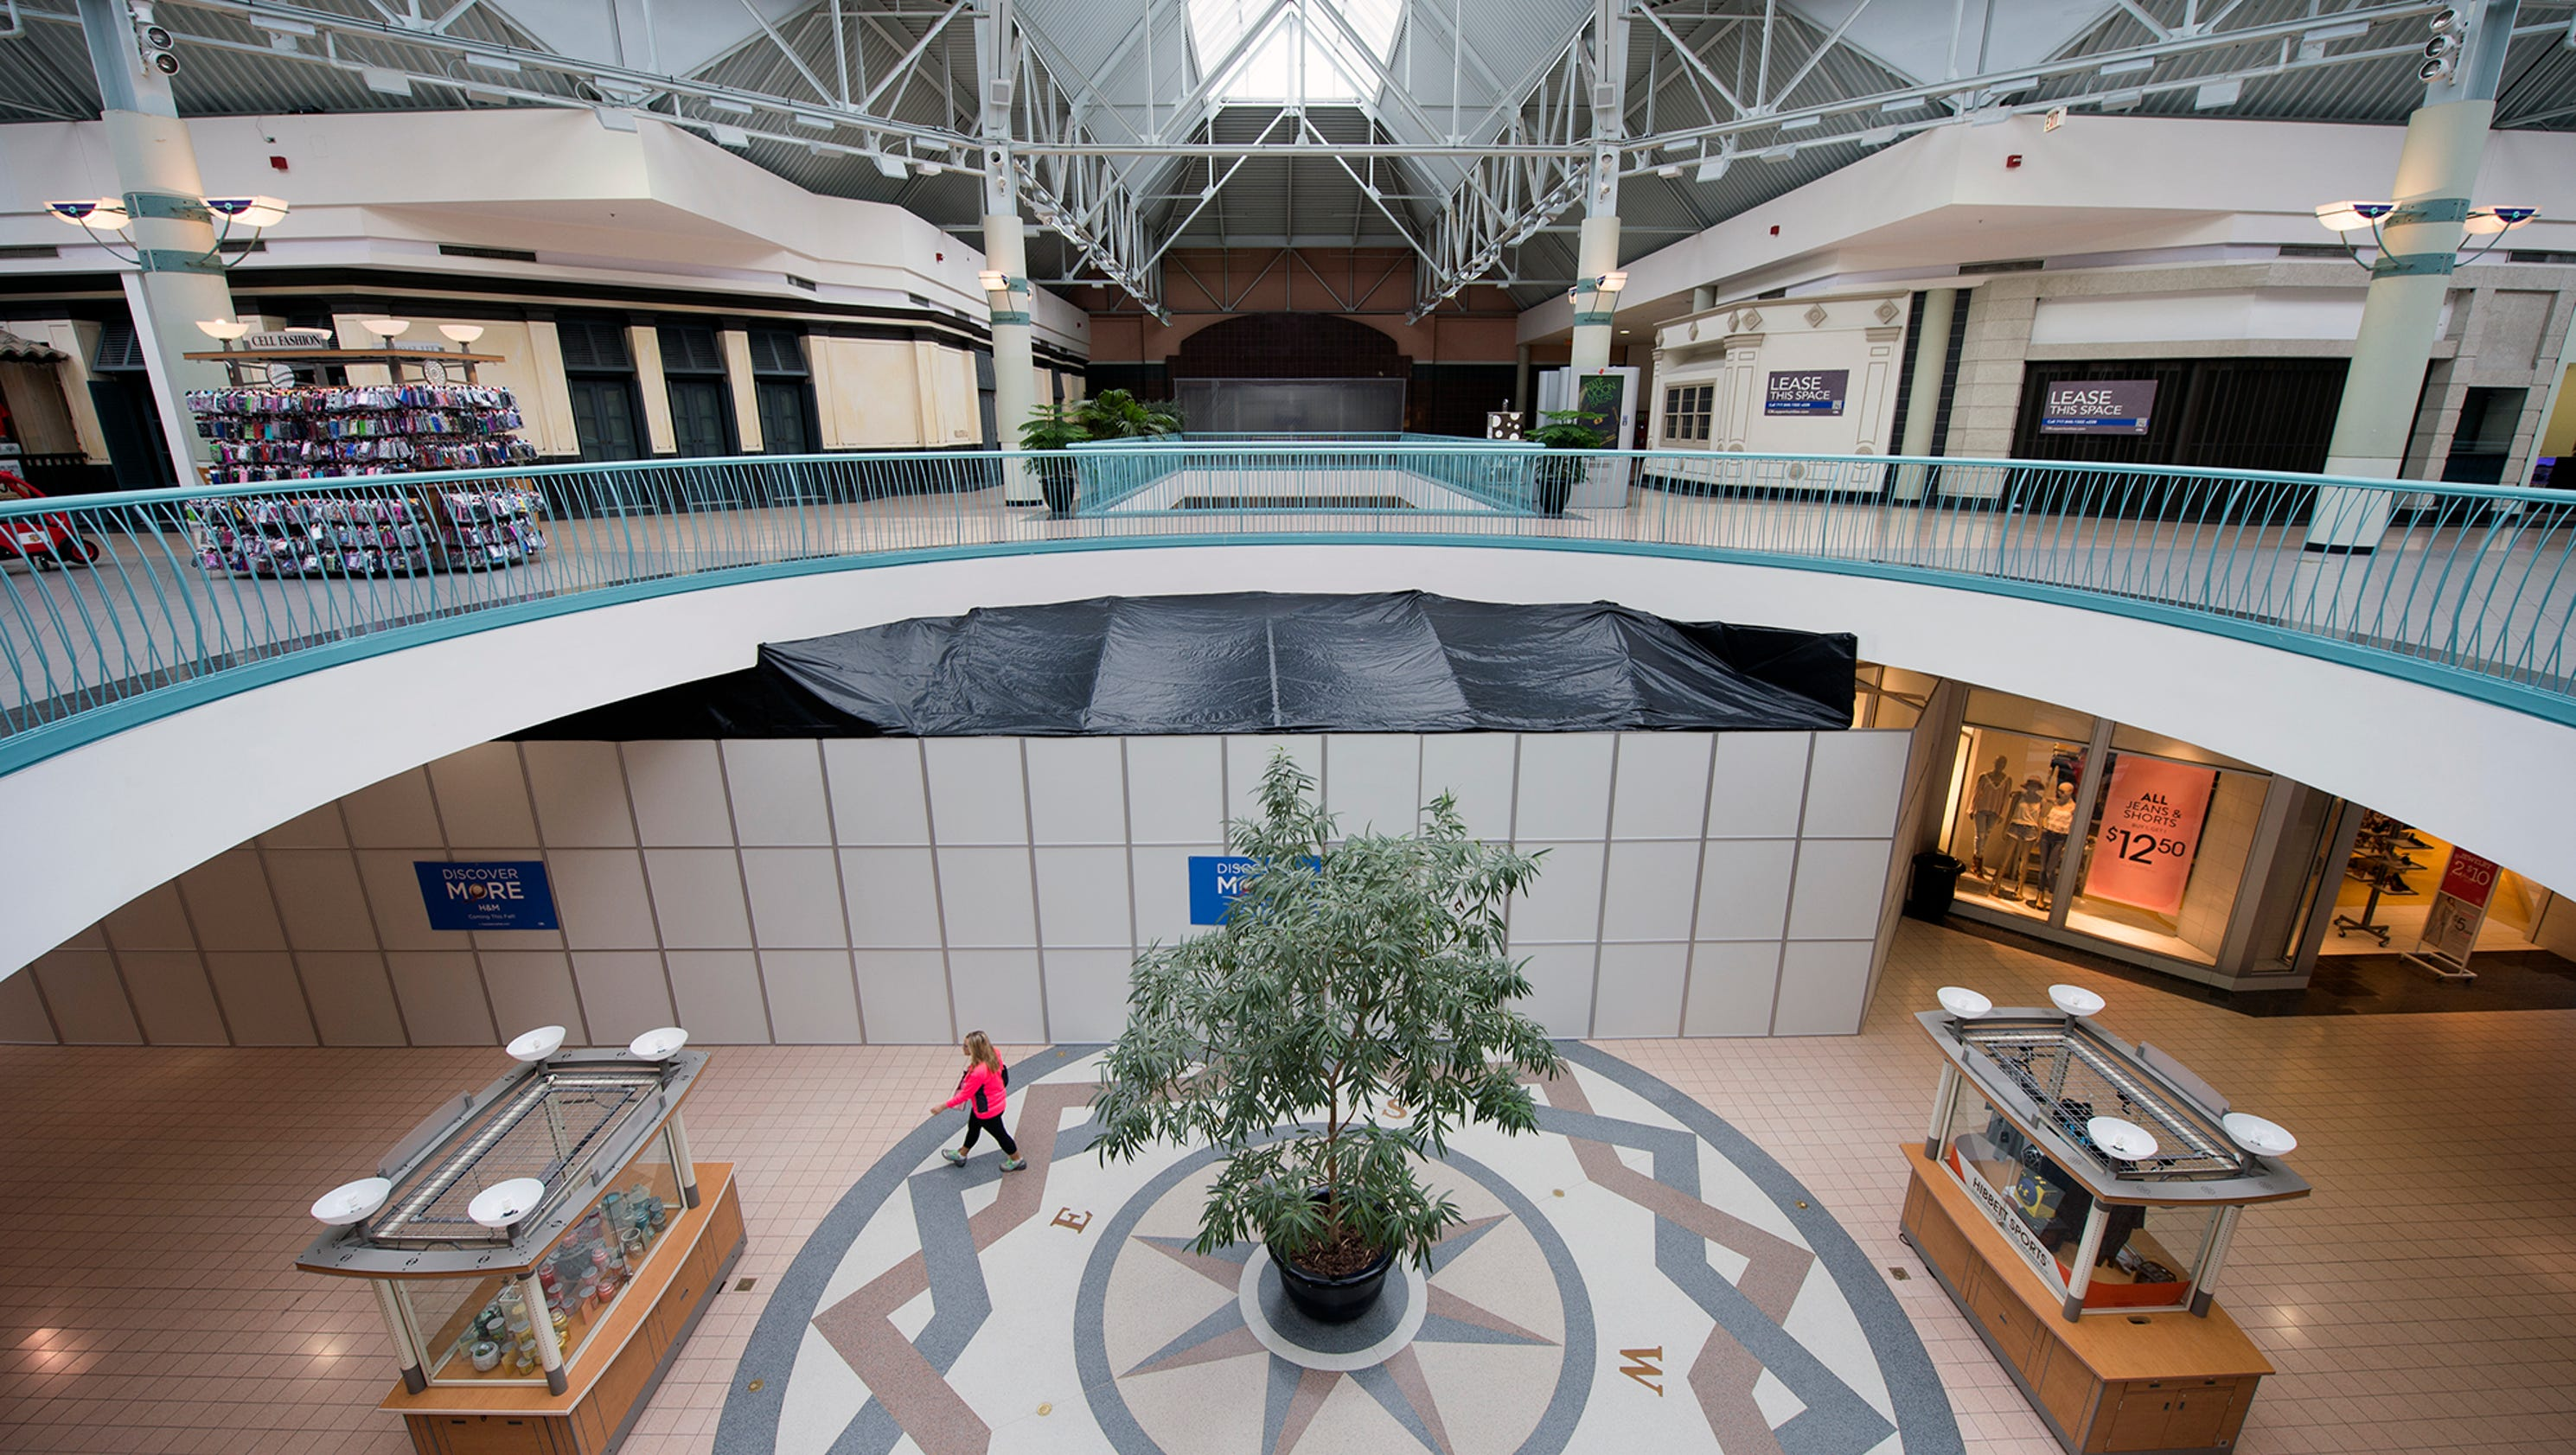 York Galleria Mall visitors under 18 are required to be accompanied by a parent or guardian 21 years or older on Friday and Saturday evenings after 6pm. Security will .